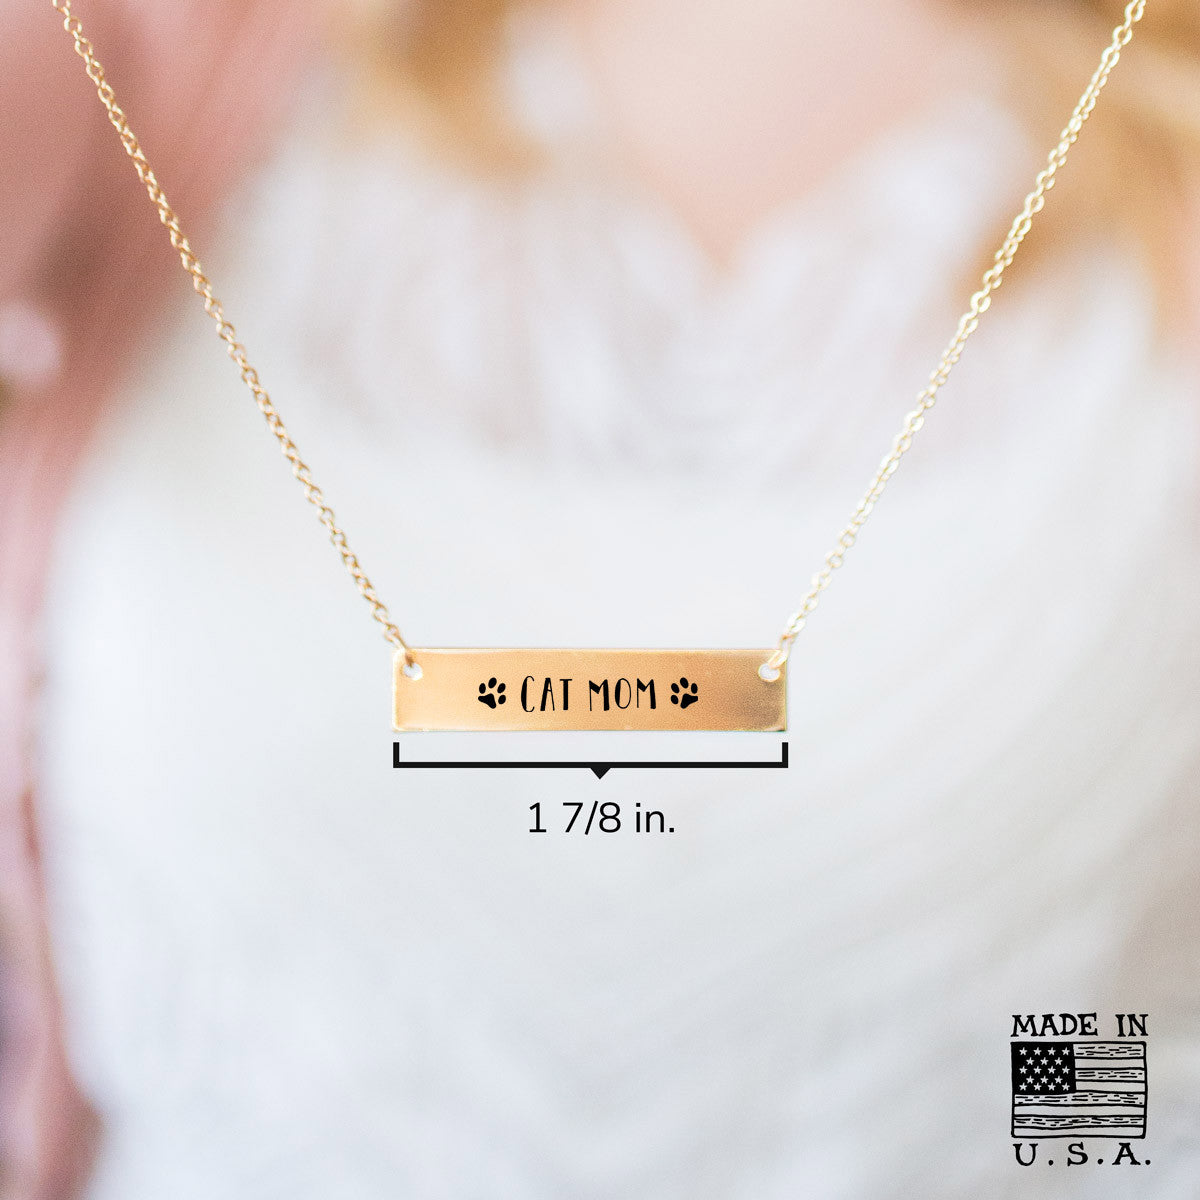 Cat Mom Gold / Silver Bar Necklace - pipercleo.com